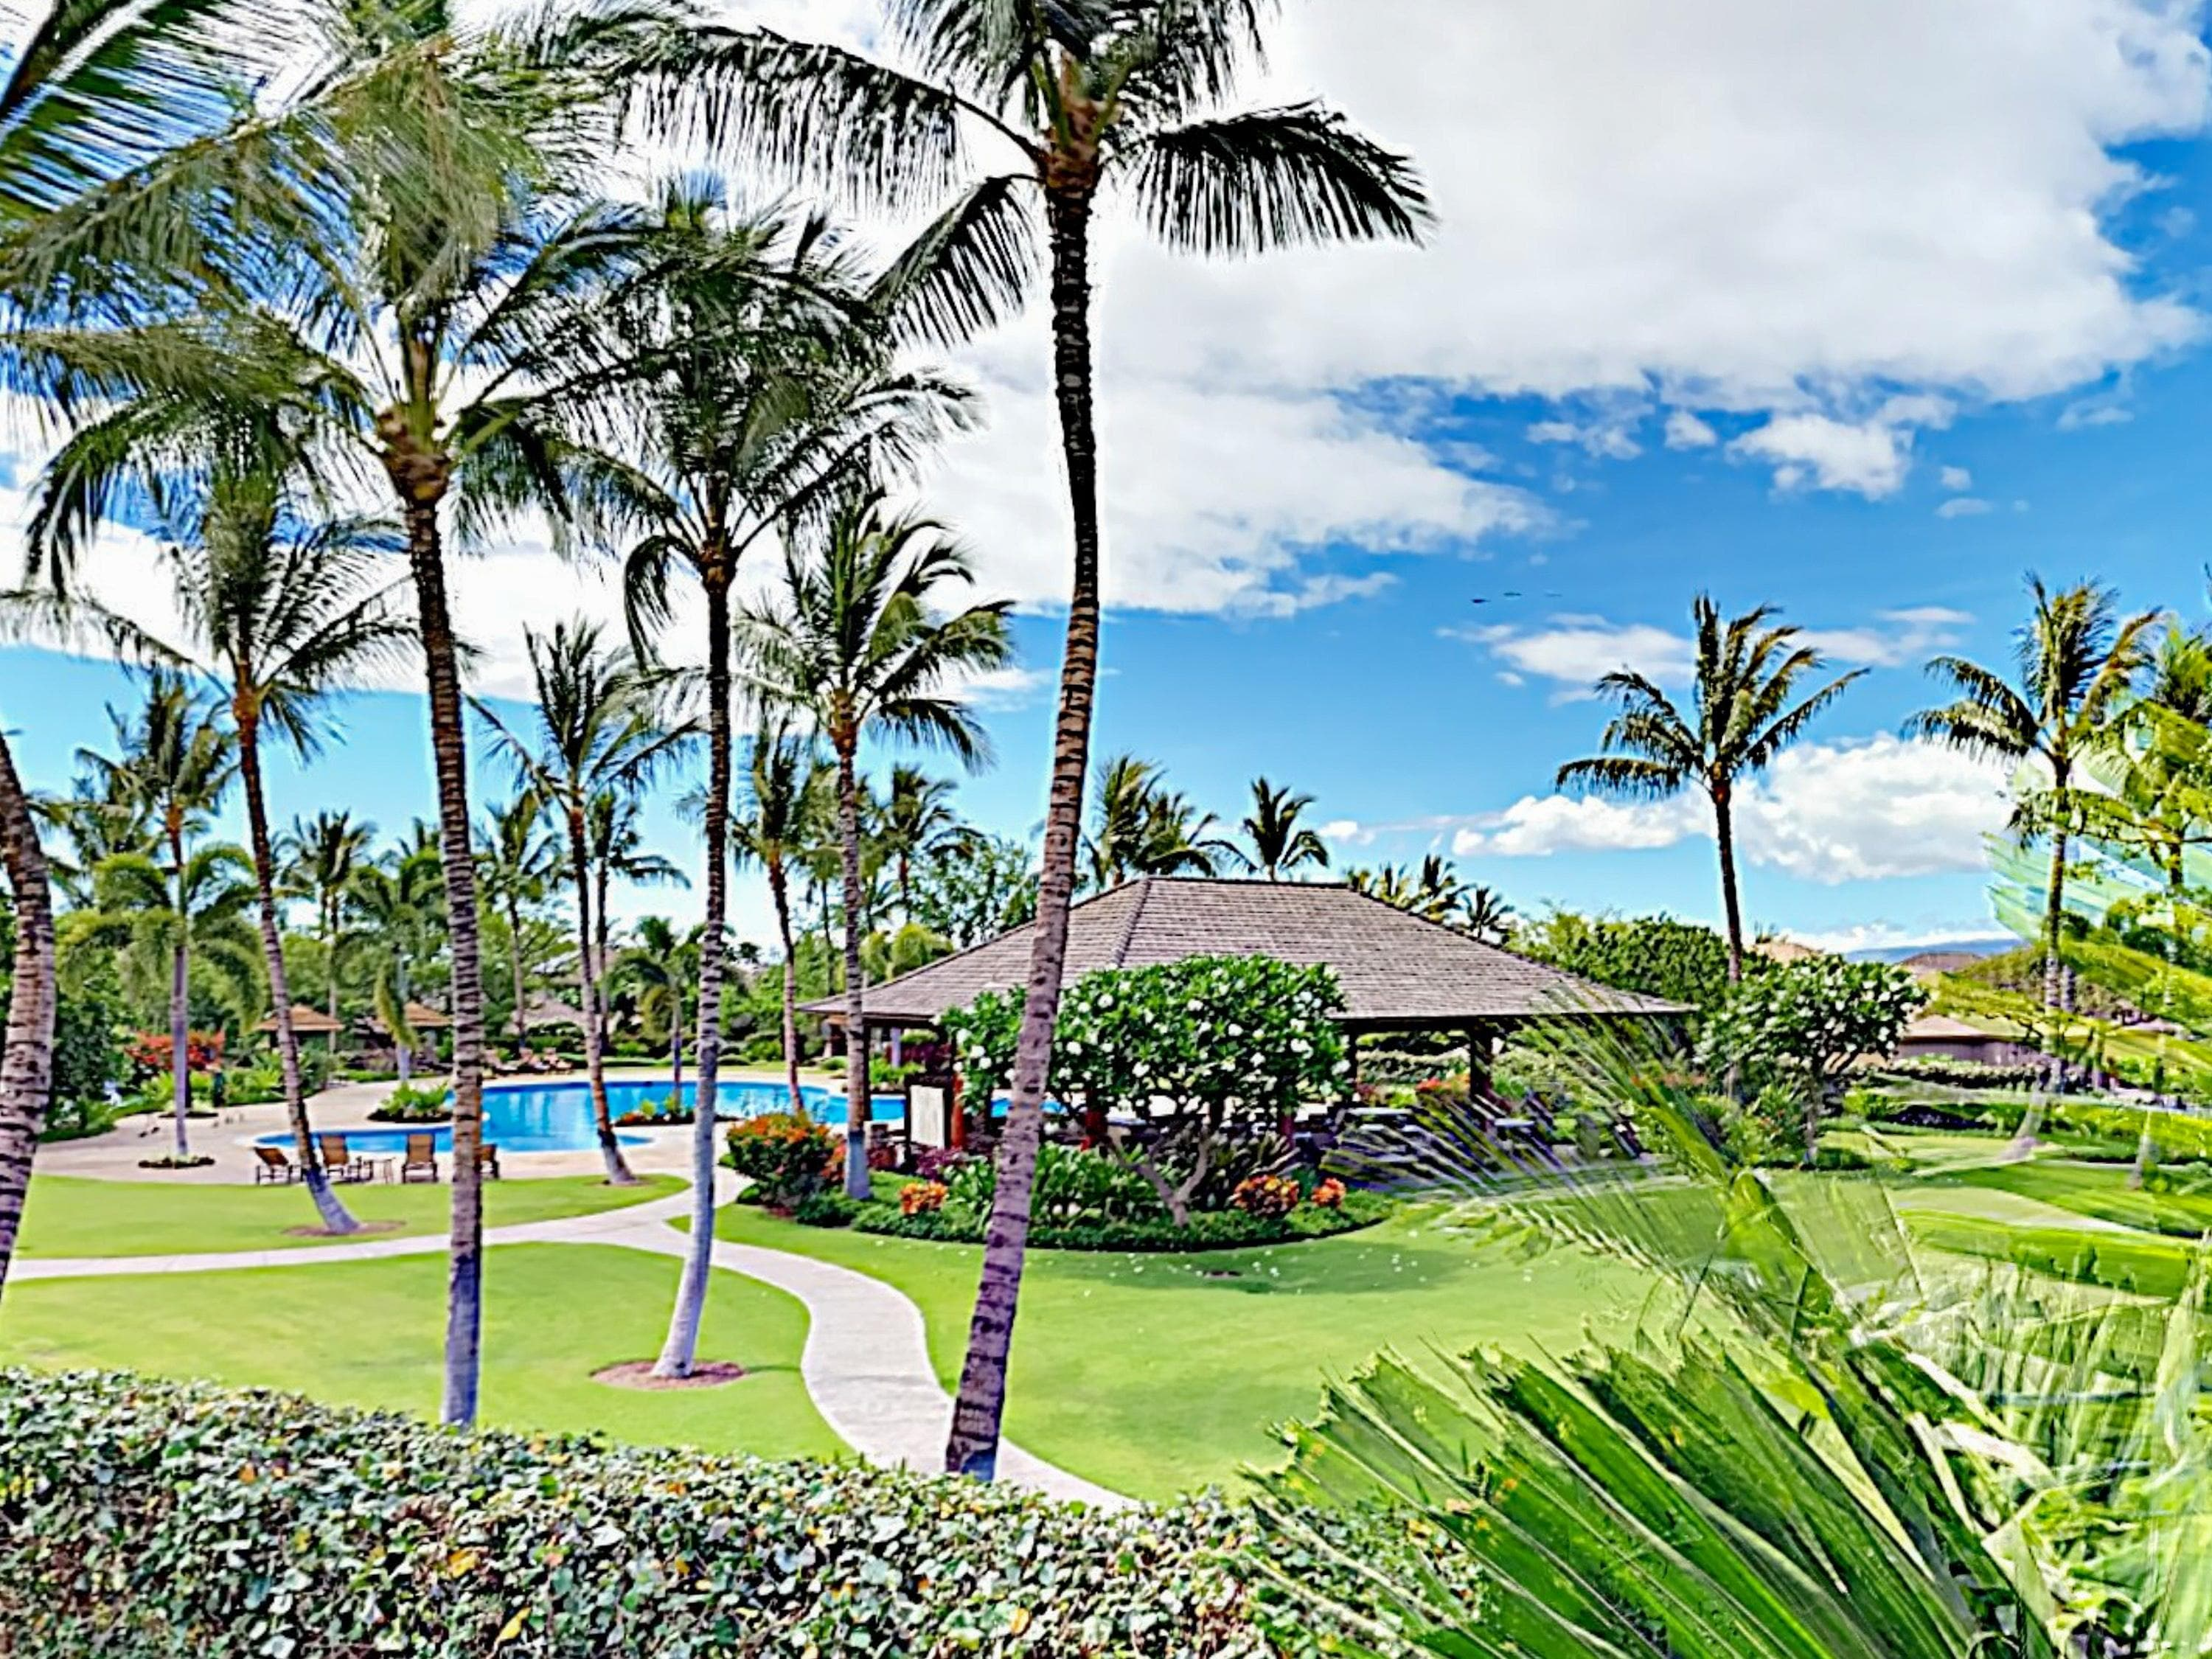 Welcome to Kulalani! This townhome at Mauna Lani Resort is professionally managed by TurnKey Vacation Rentals.